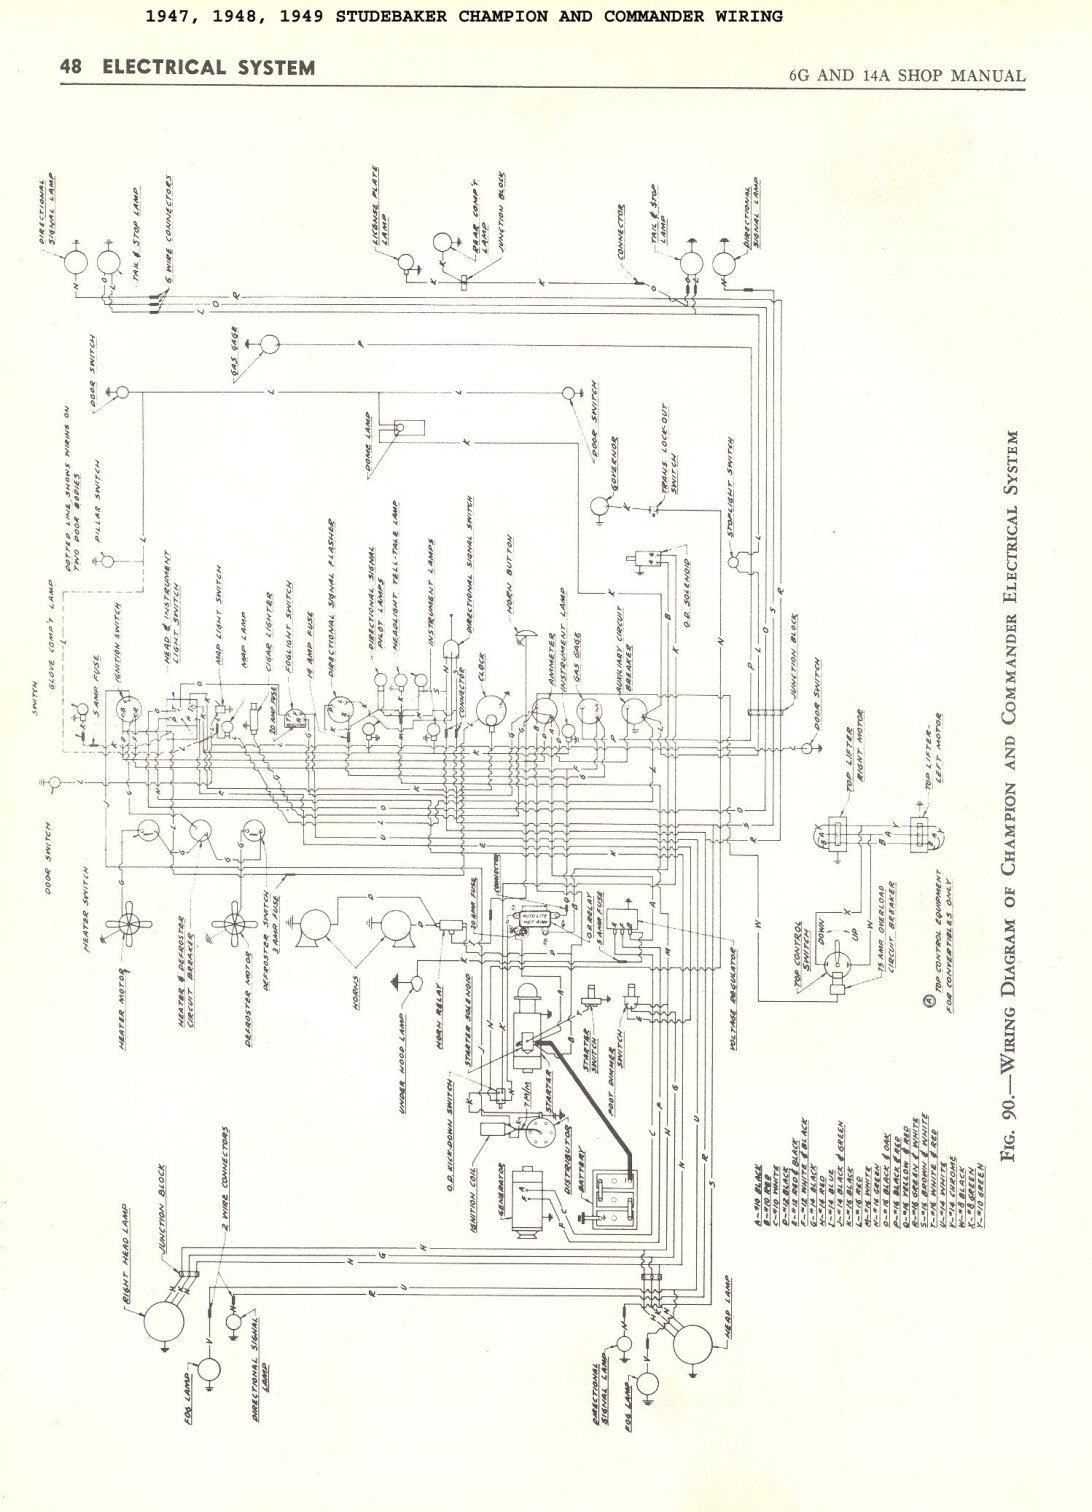 hight resolution of international truck wiring diagram 1947 1948 1949 champion and mander 5k